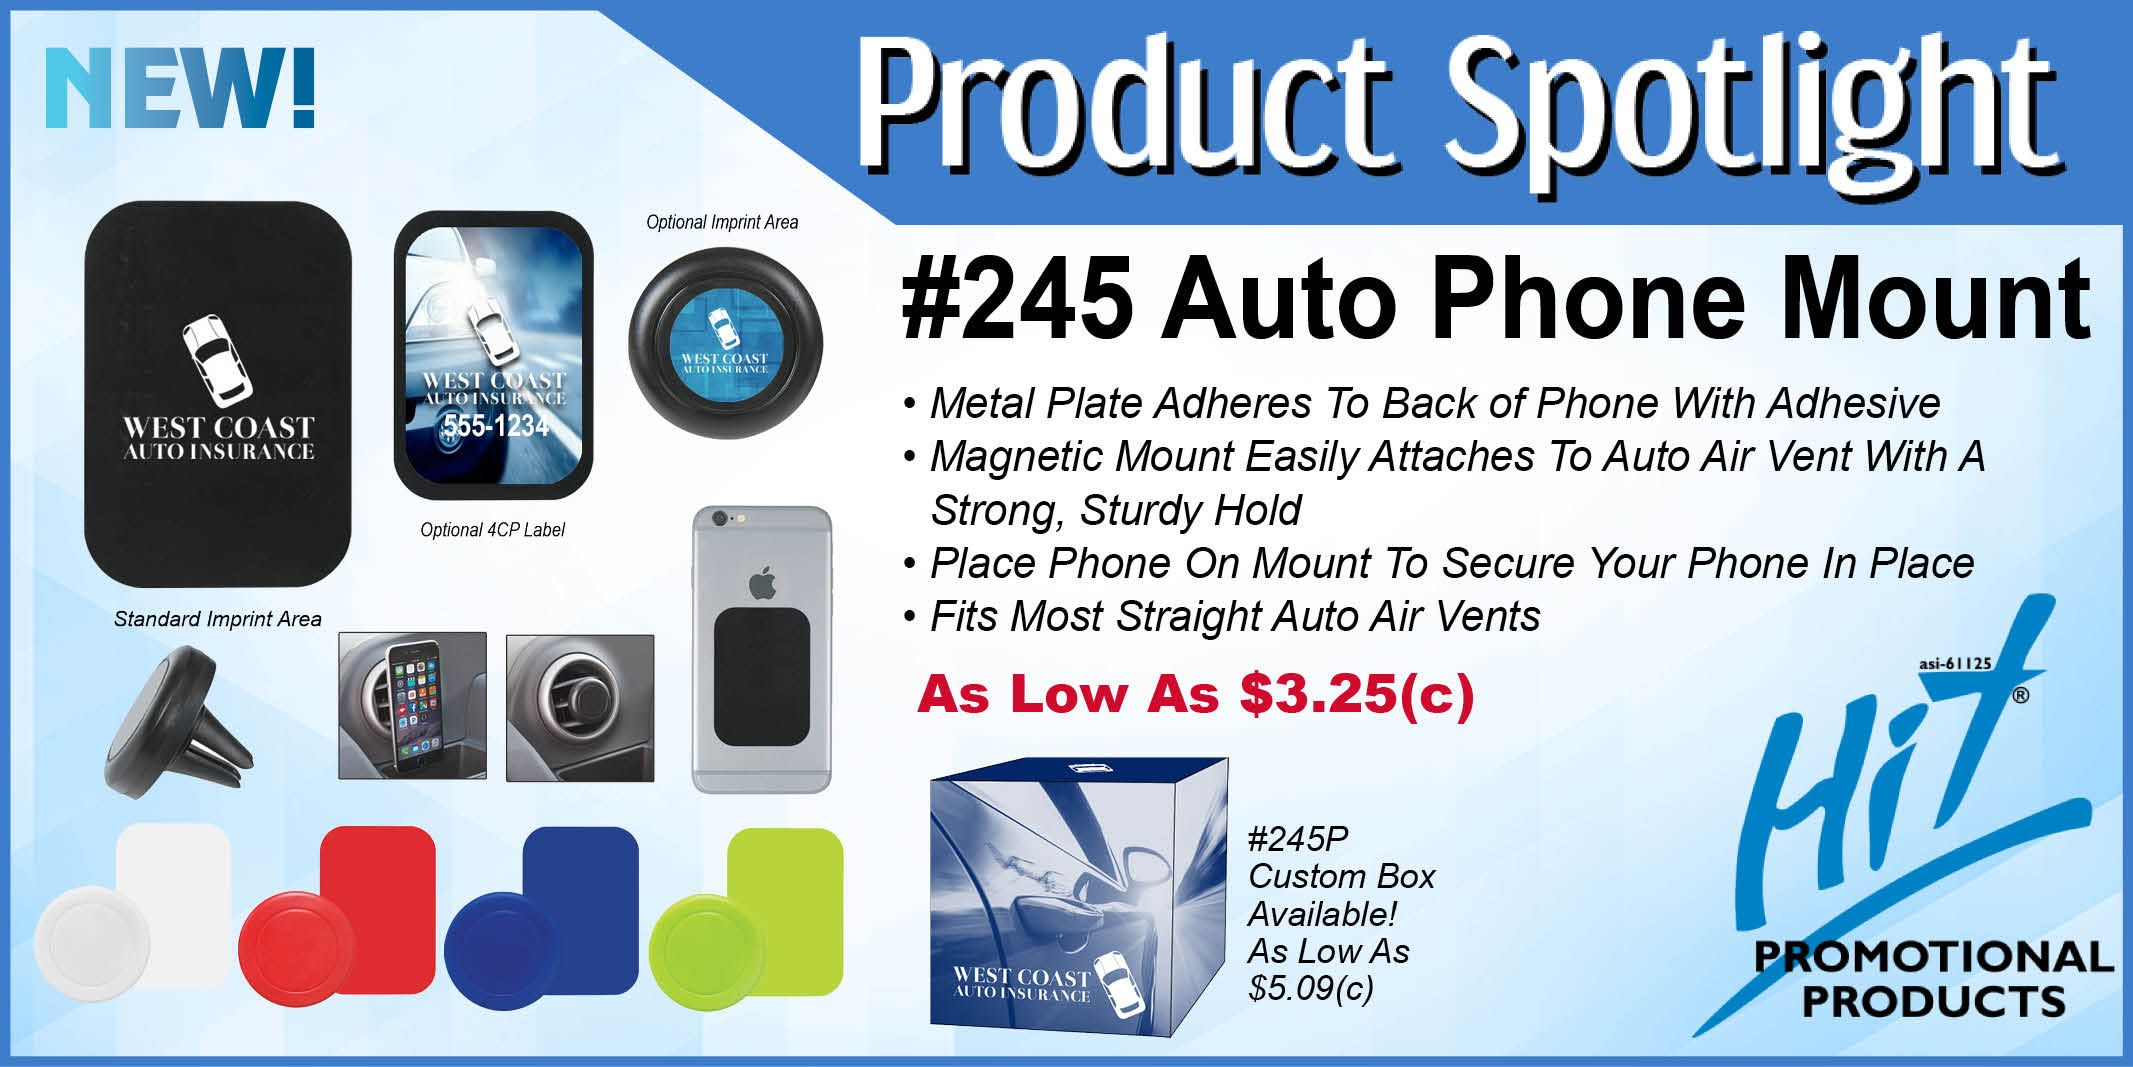 Drive brand awareness with handy promo products theyll